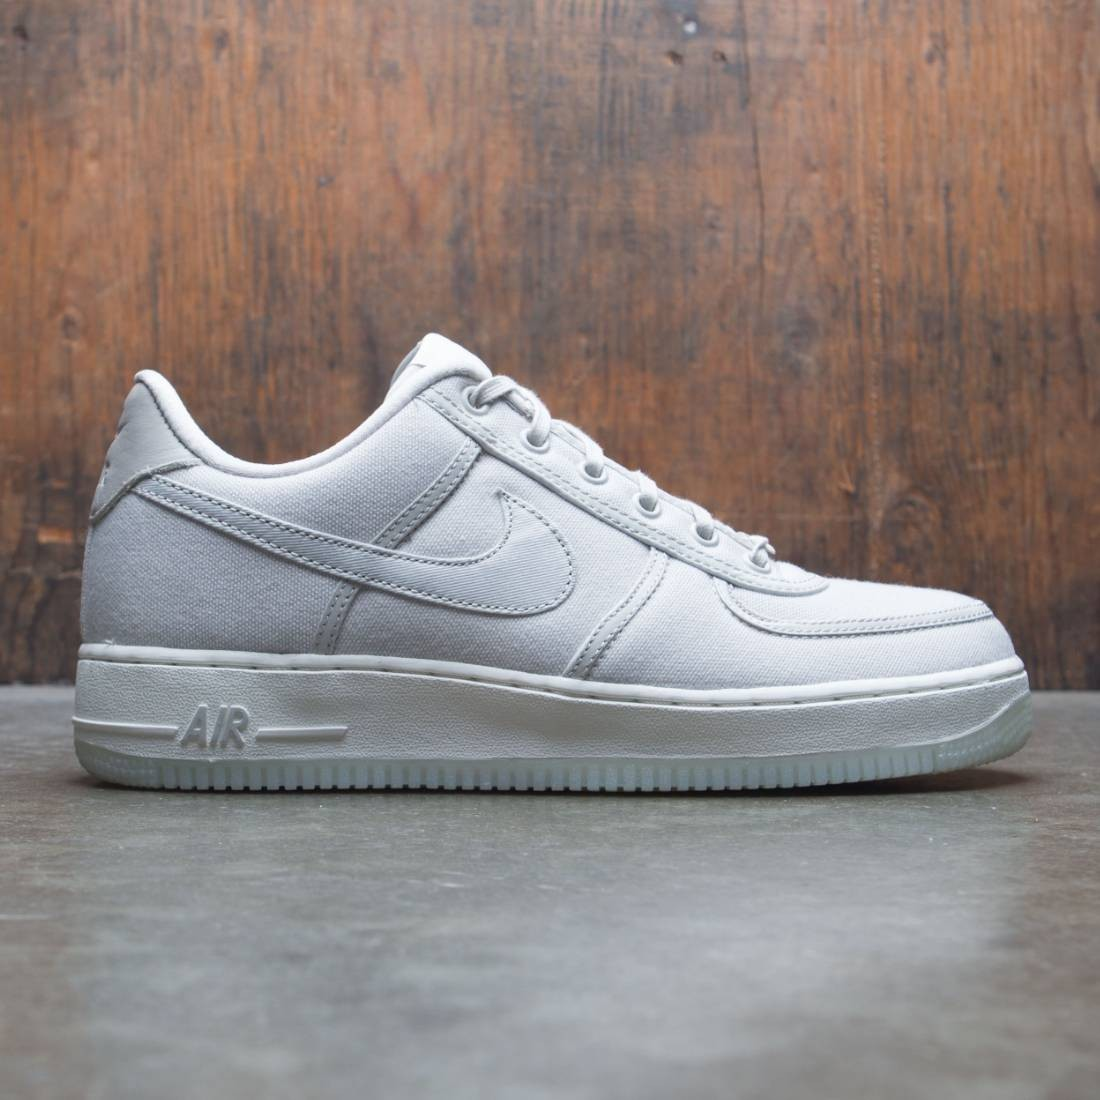 Nike Men Air Force 1 Low Retro Qs Canvas (light bone light bone sail)